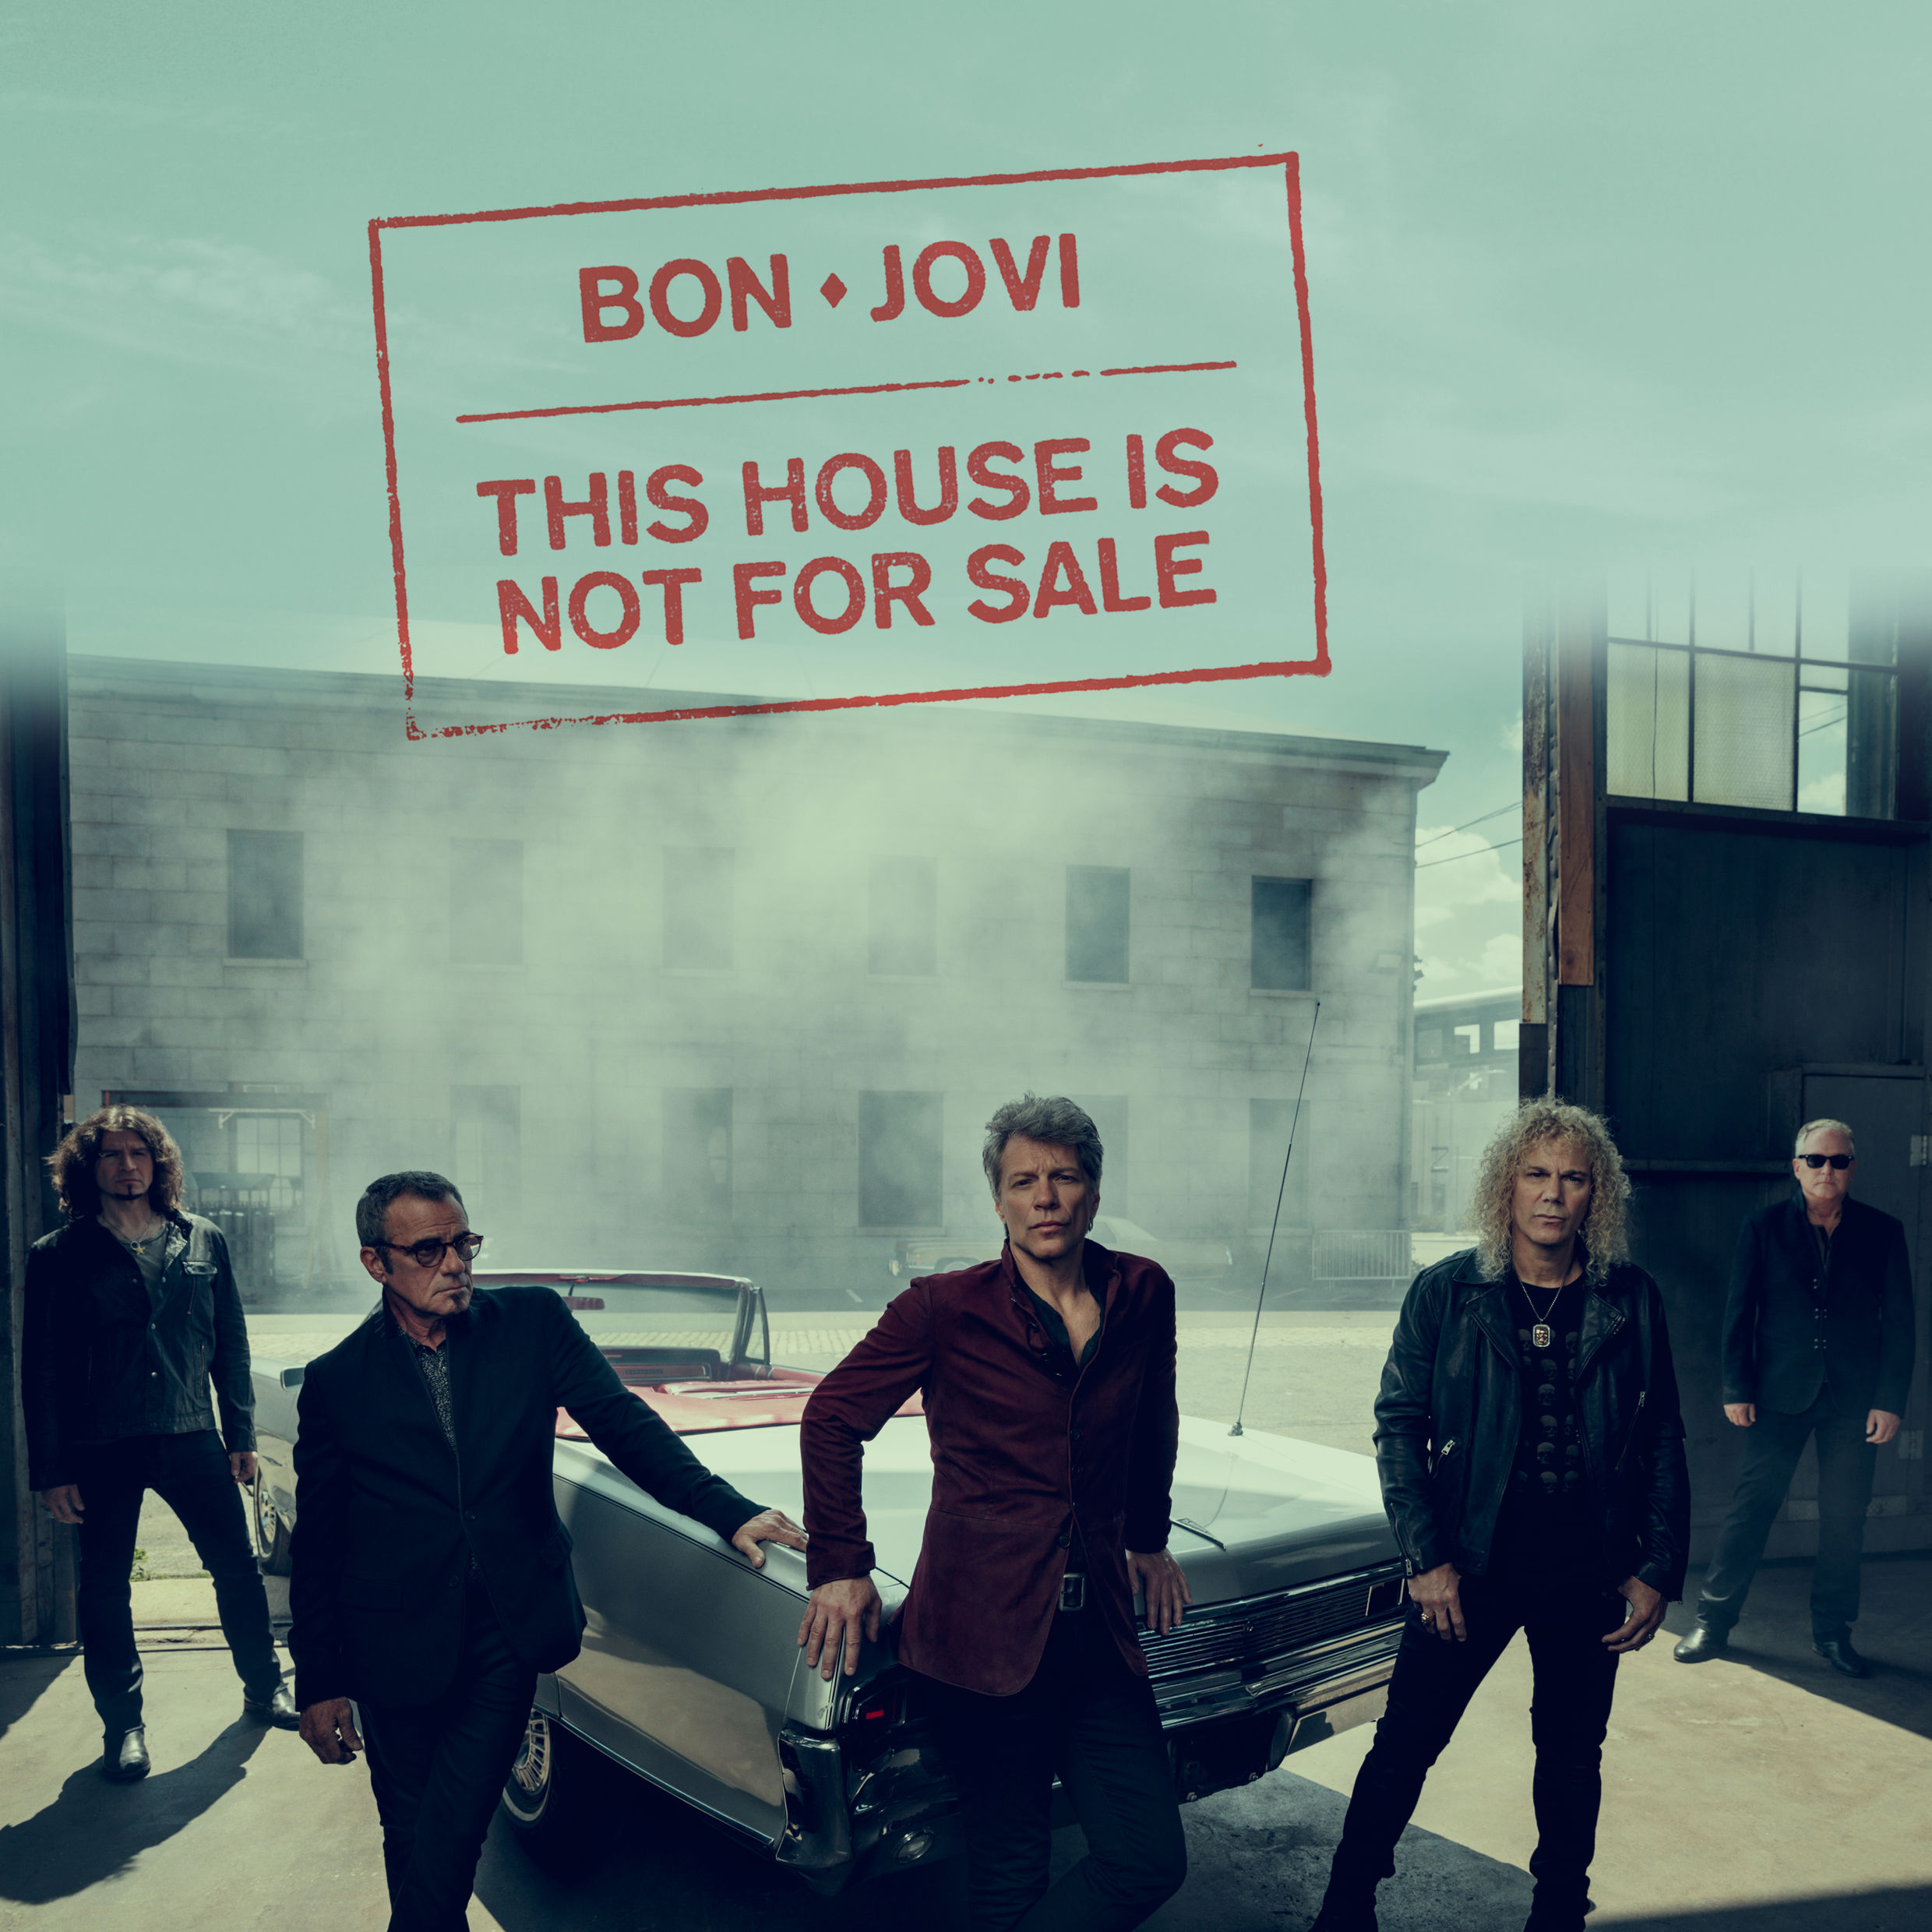 Bon-Jovi-This-House-Is-Not-for-Sale-2016-2480x2480